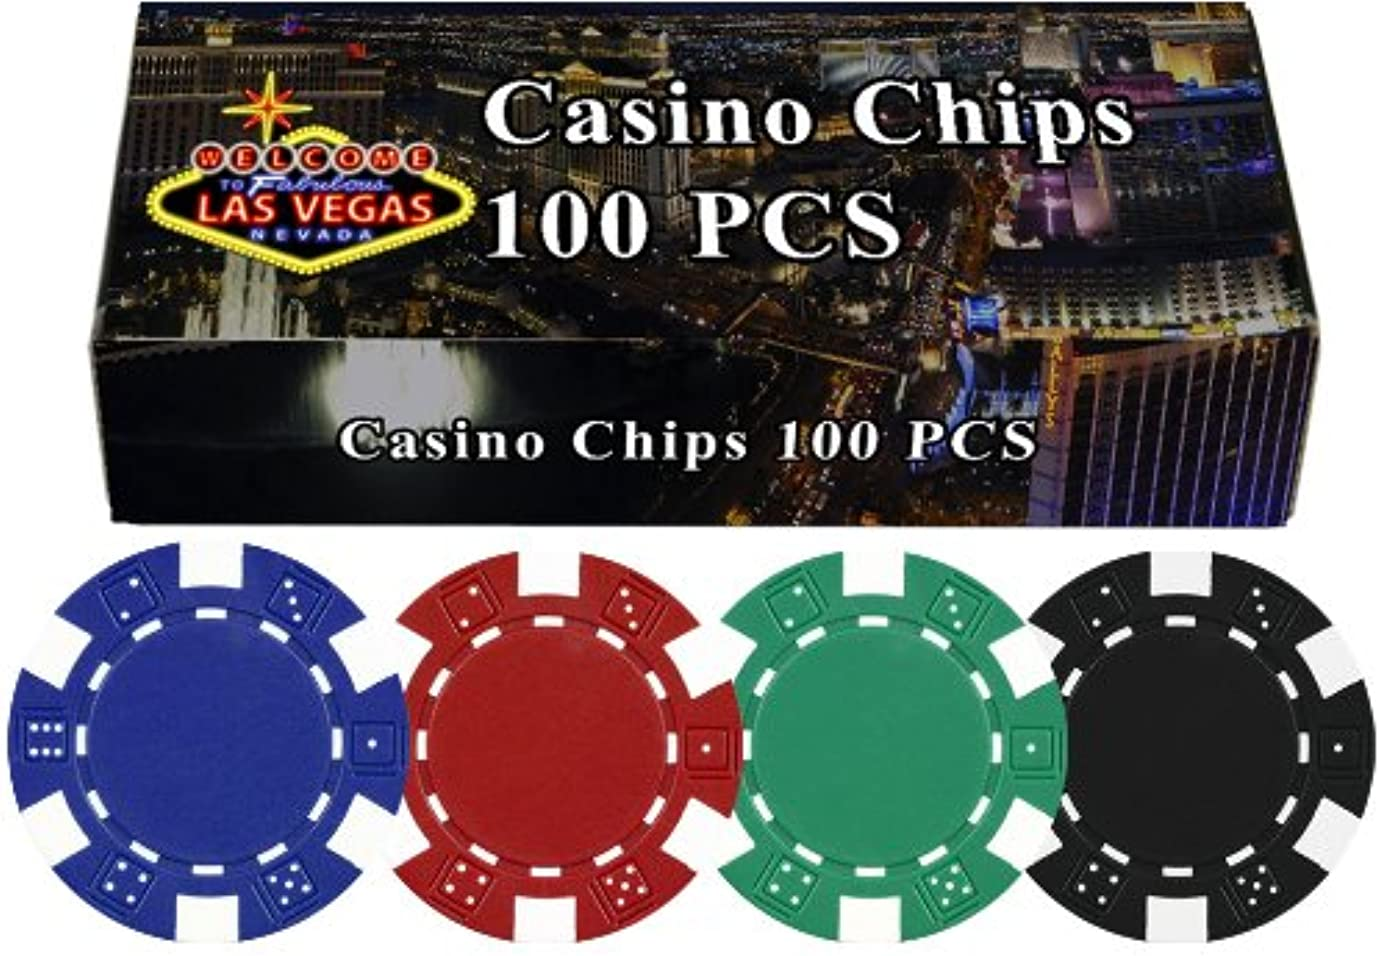 Da Vinci 100 11.5 Gram Poker Chips in Las Vegas Gift Box